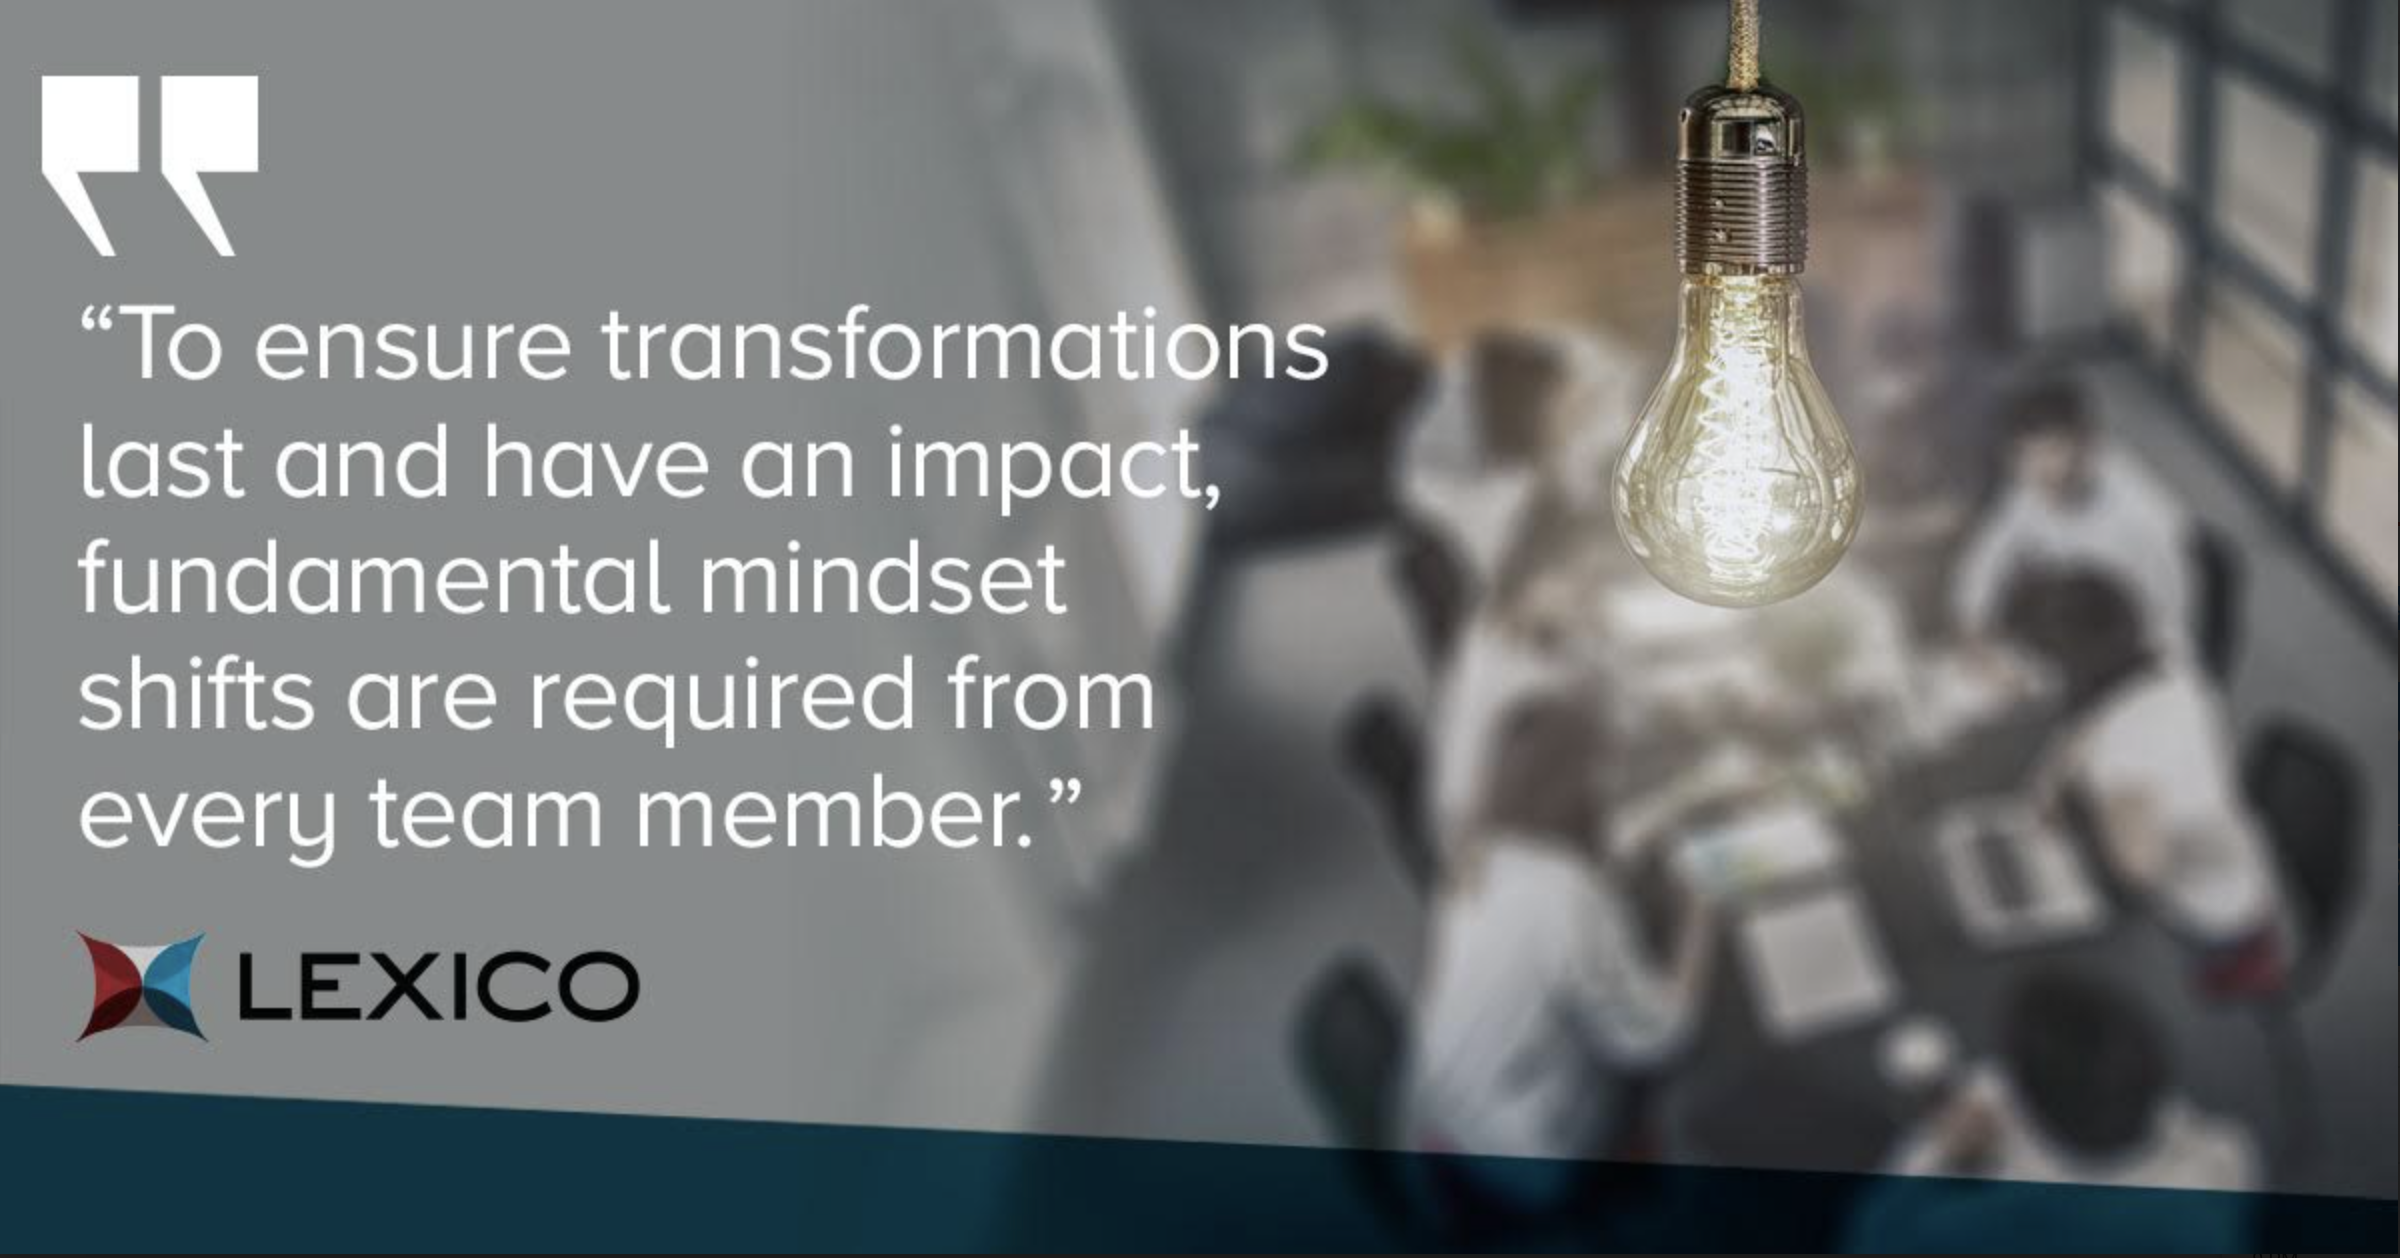 Team member mindset is key to a successful transformation.